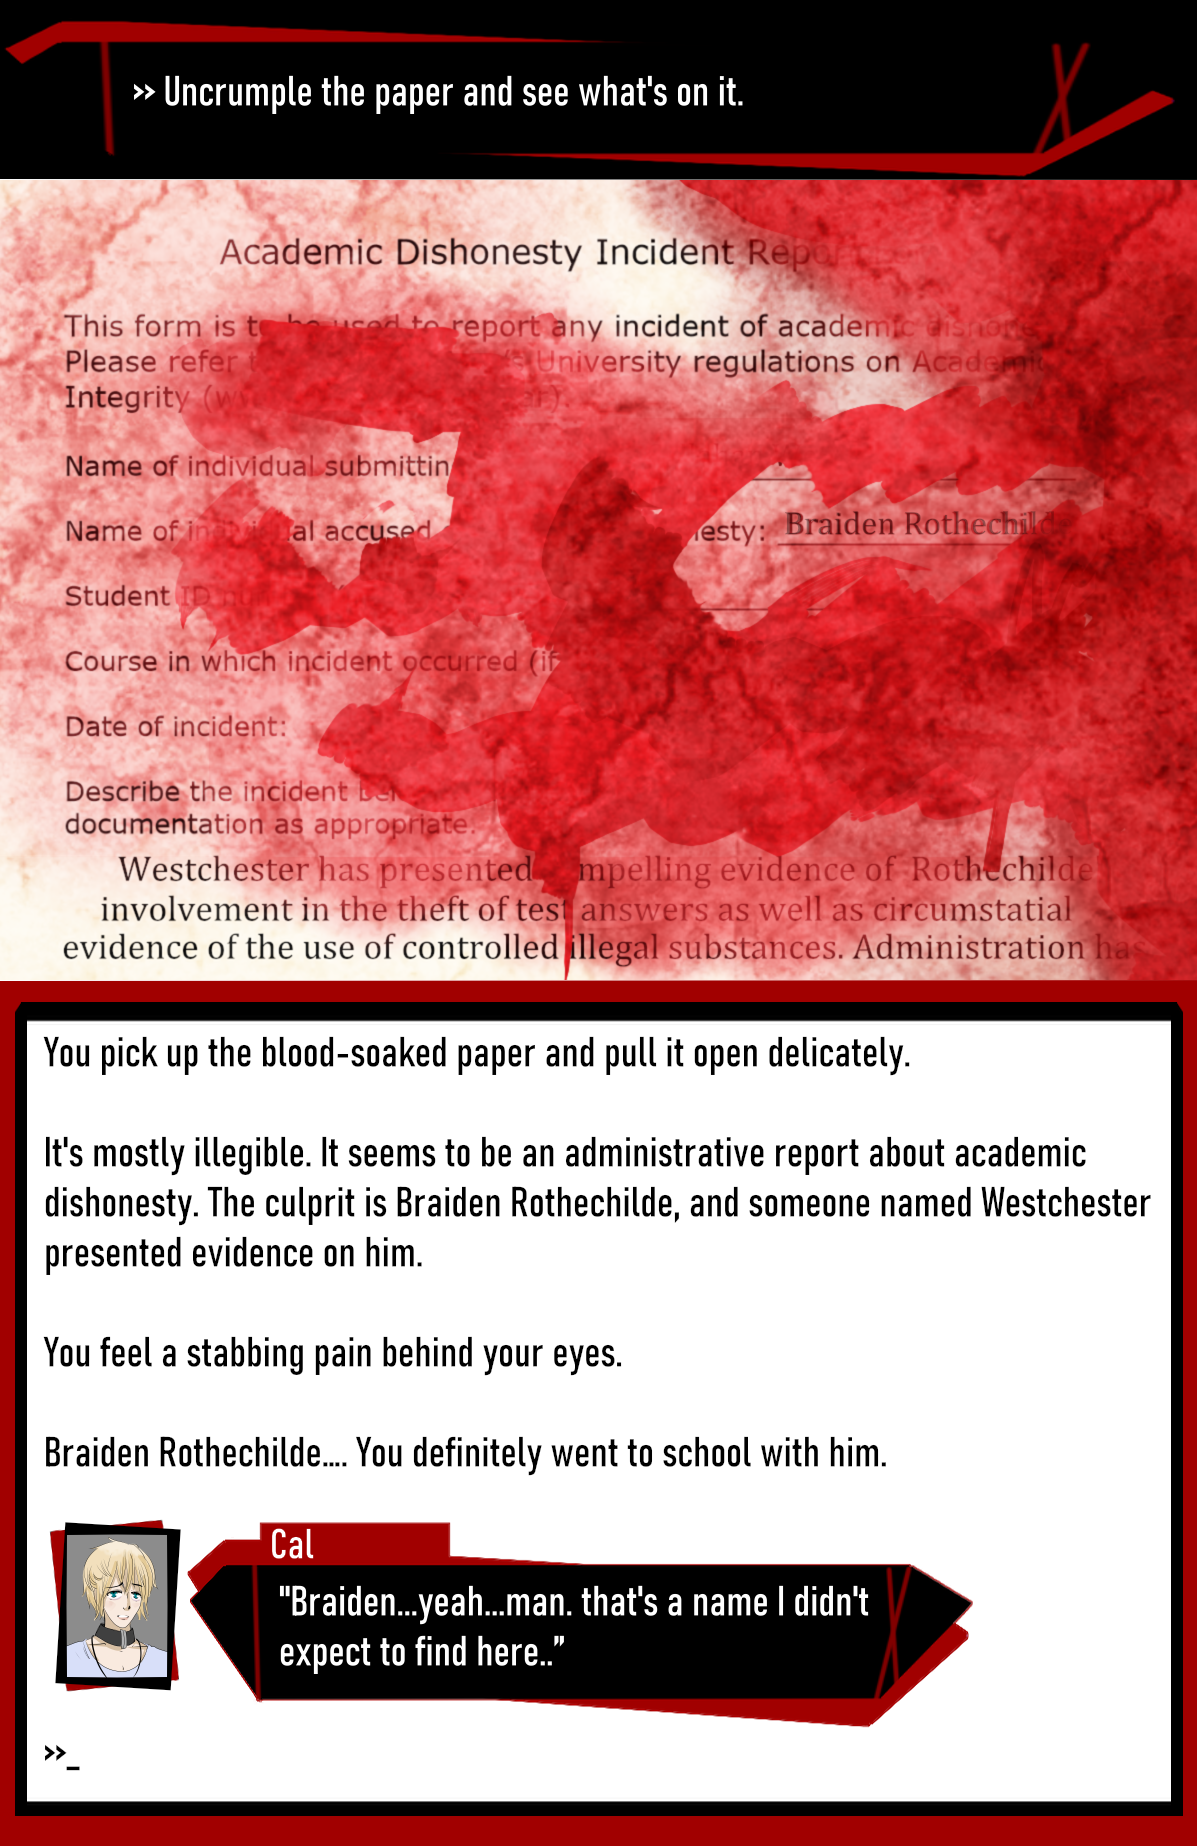 """>> Uncrumple the paper and see what's on it.  You pick up the blood-soaked paper and pull it open delicately. It's mostly illegible.  It seems to be an administrative report about academic dishonesty. The culprit is Braiden Rothechilde, and someone named Westchester presented evidence on him.  You feel a stabbing pain behind your eyes.  Braiden Rothechilde…. You definitely went to school with him.  C: """"Braiden...yeah...man. that's a name I didn't expect to find here.."""""""